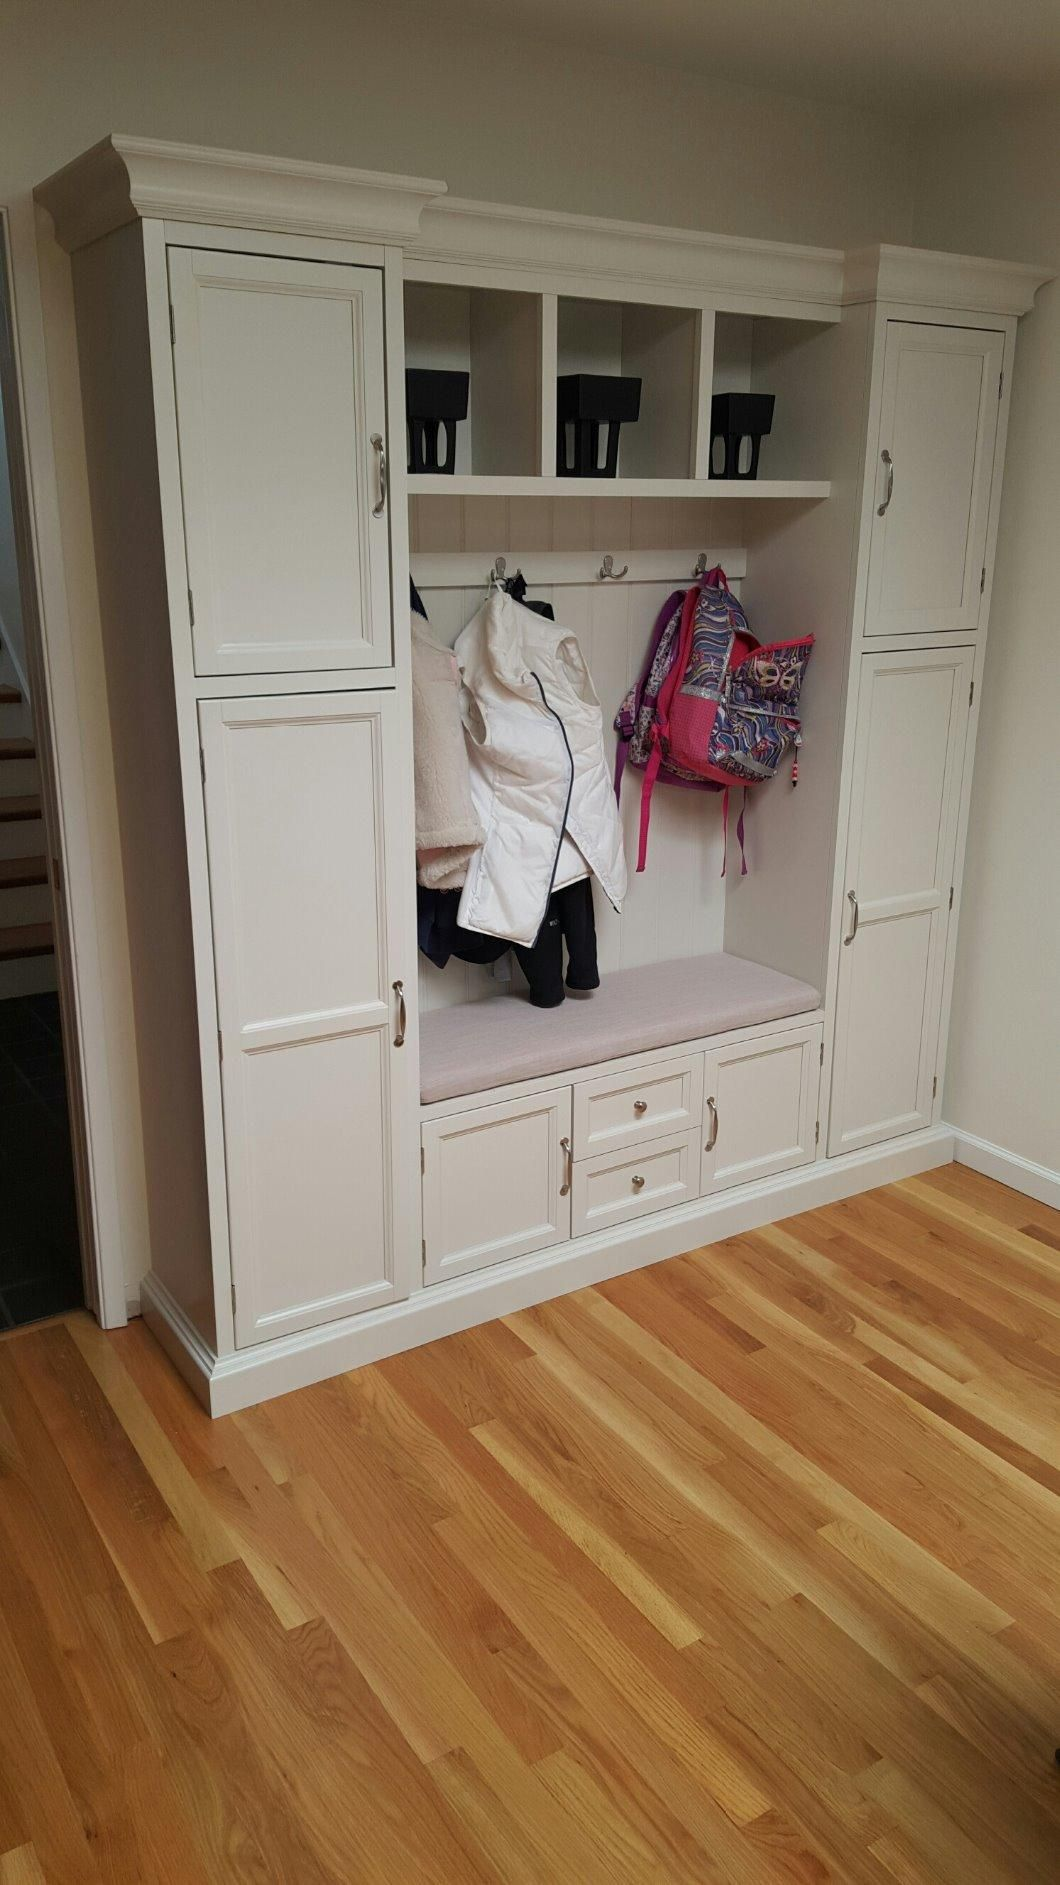 Amazon Com Customer Reviews Royce All In One Mudroom Large Polar White Mudroom Home Decorators Collection Home